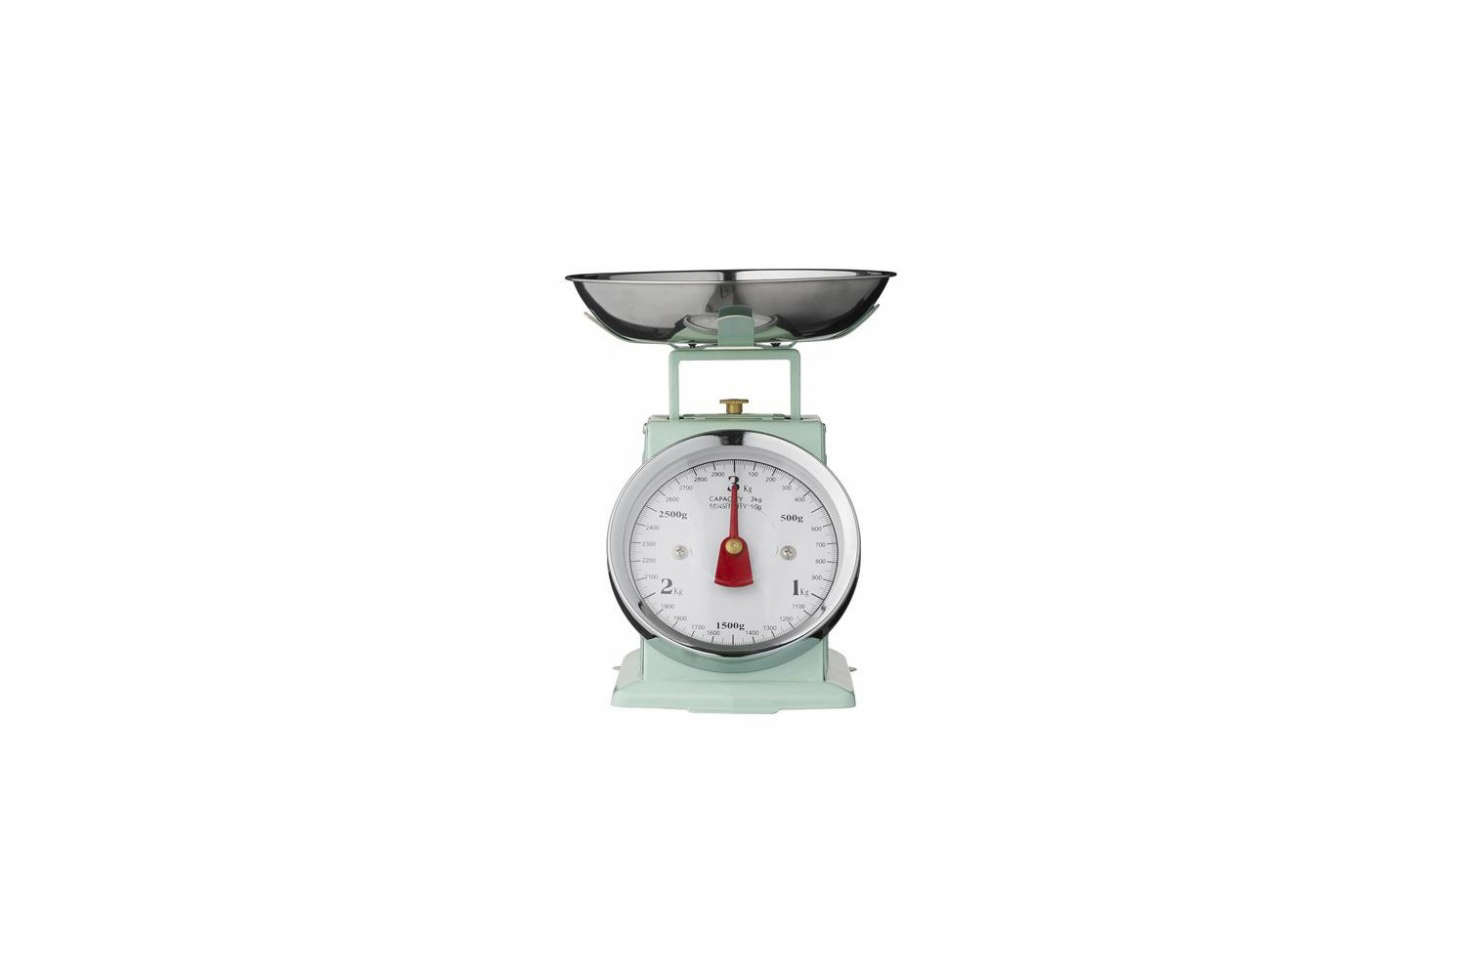 Source a vintage kitchen scale from your local flea market or online like this one, the Báscula Cocina Verde in Retro Mint for €35 at Deco and Living.